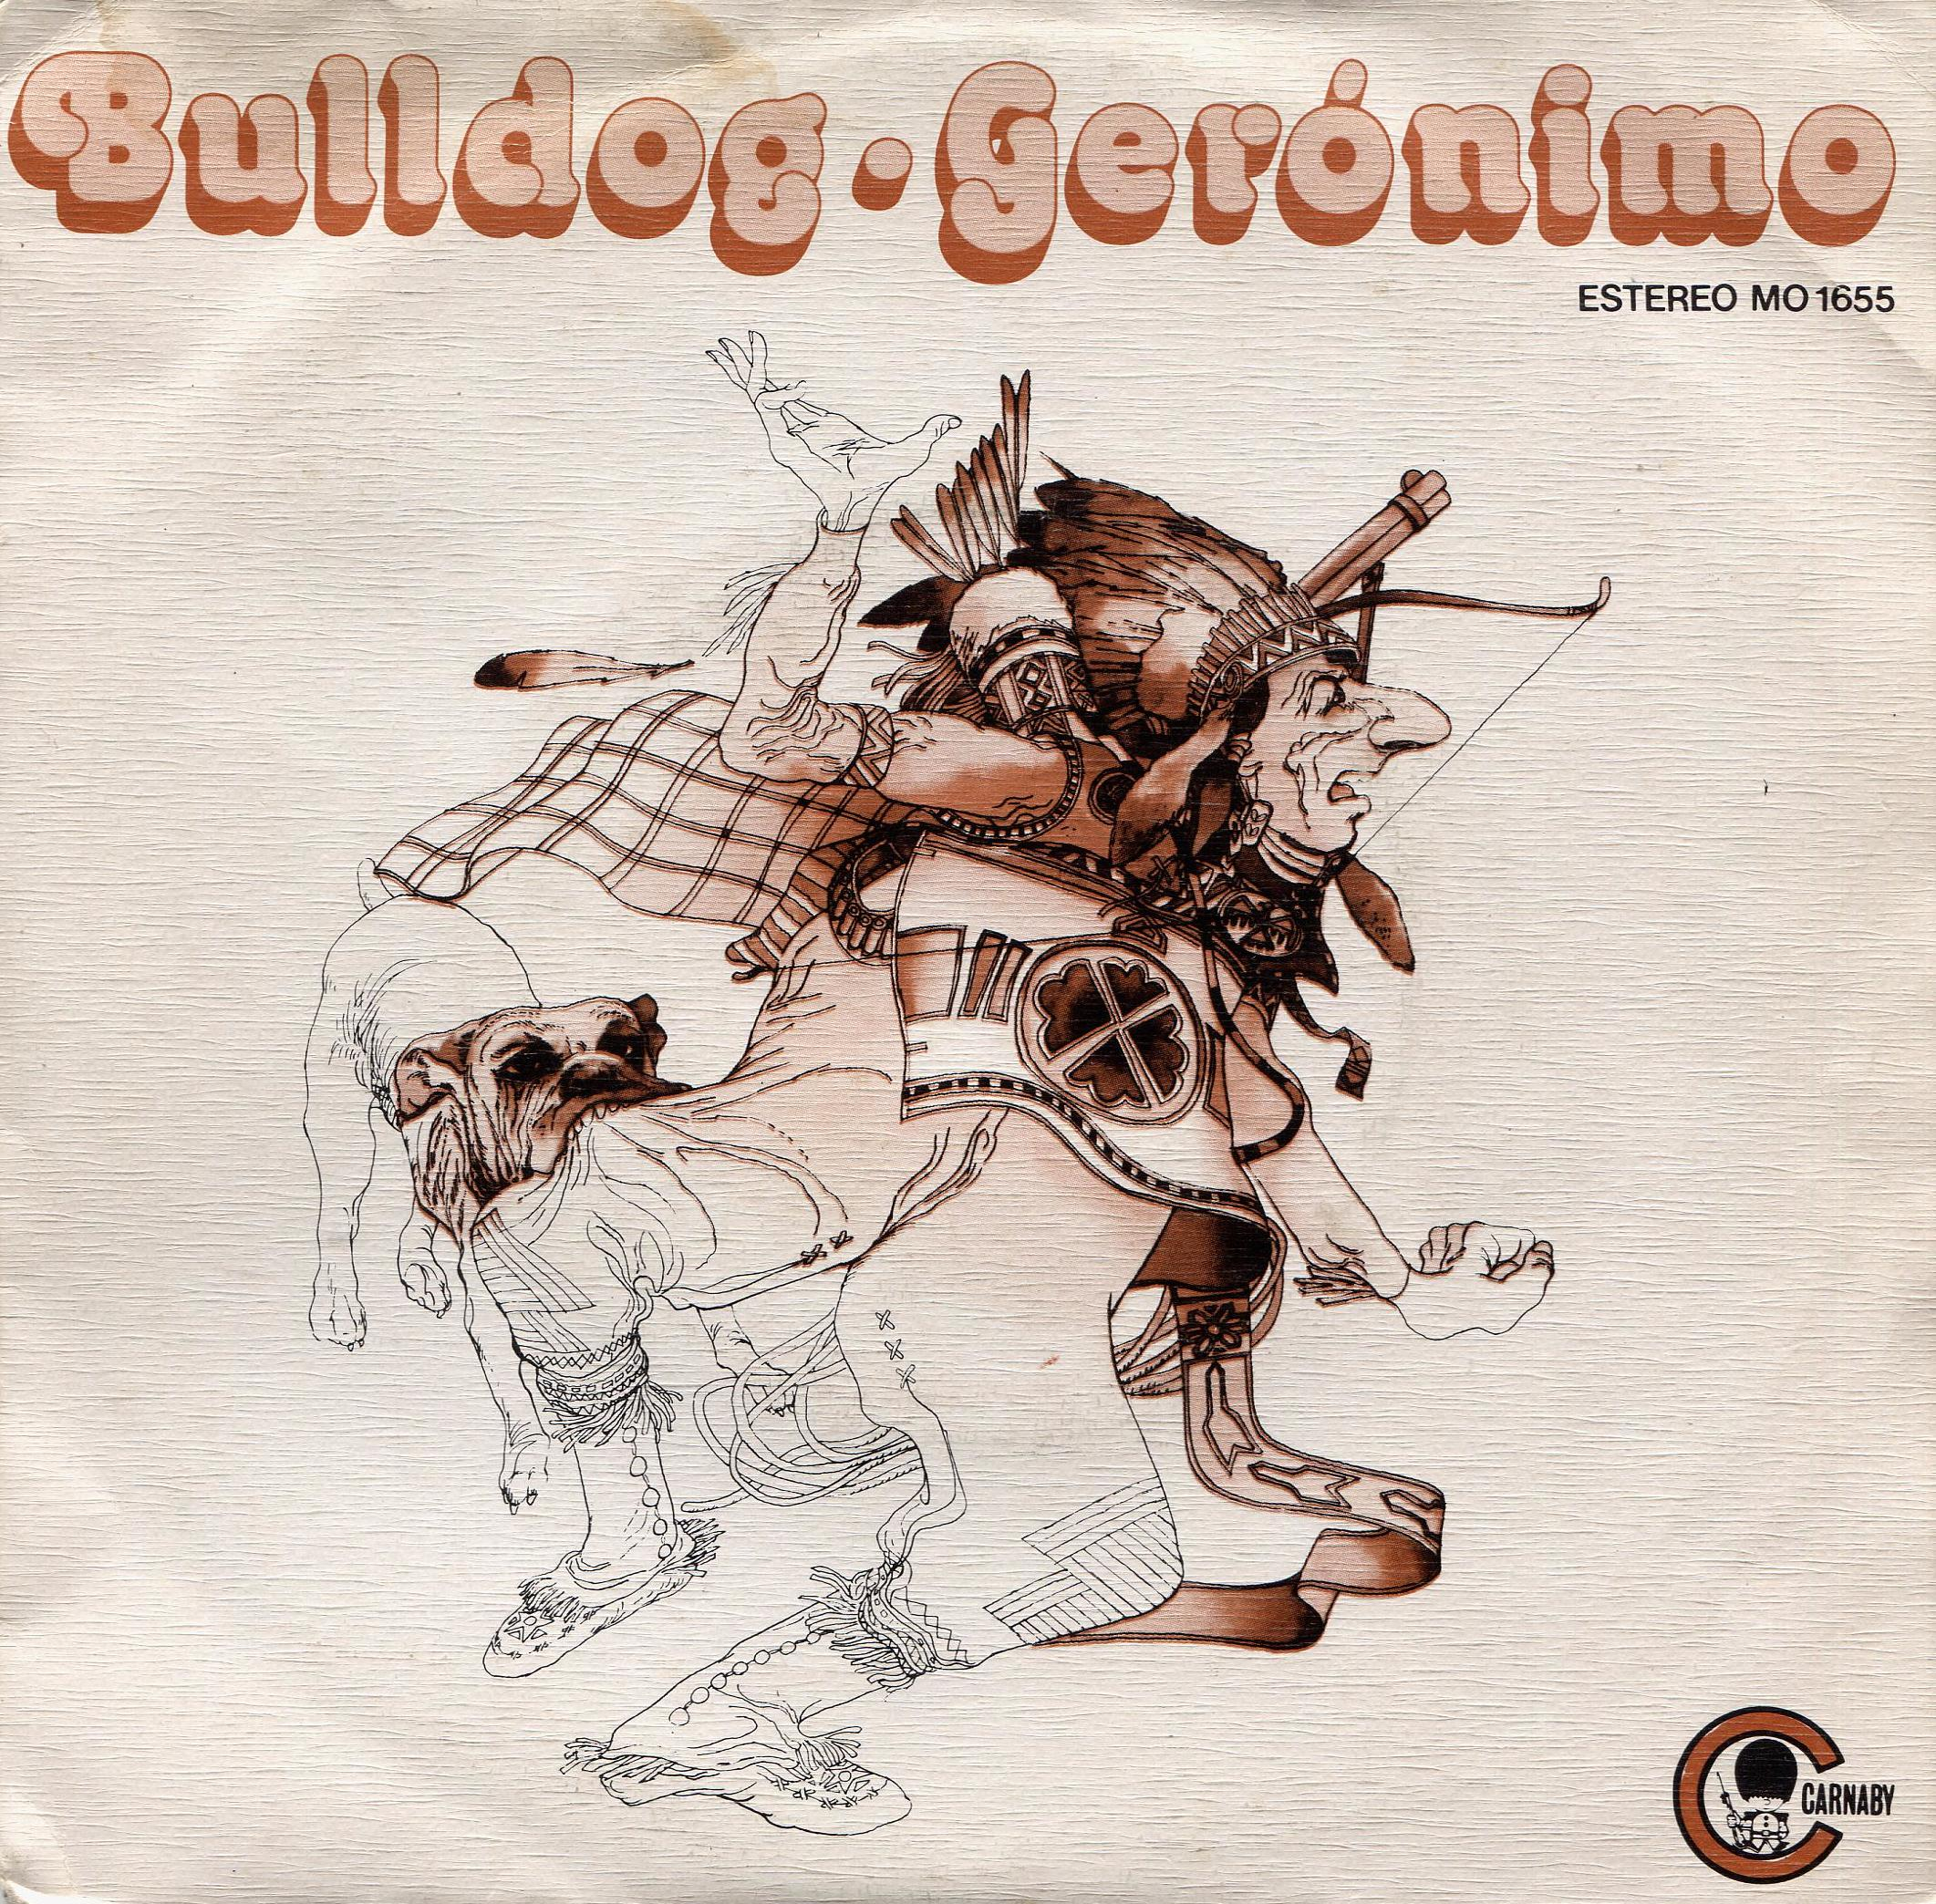 Bulldog - Gerónimo / La porta dell'estate